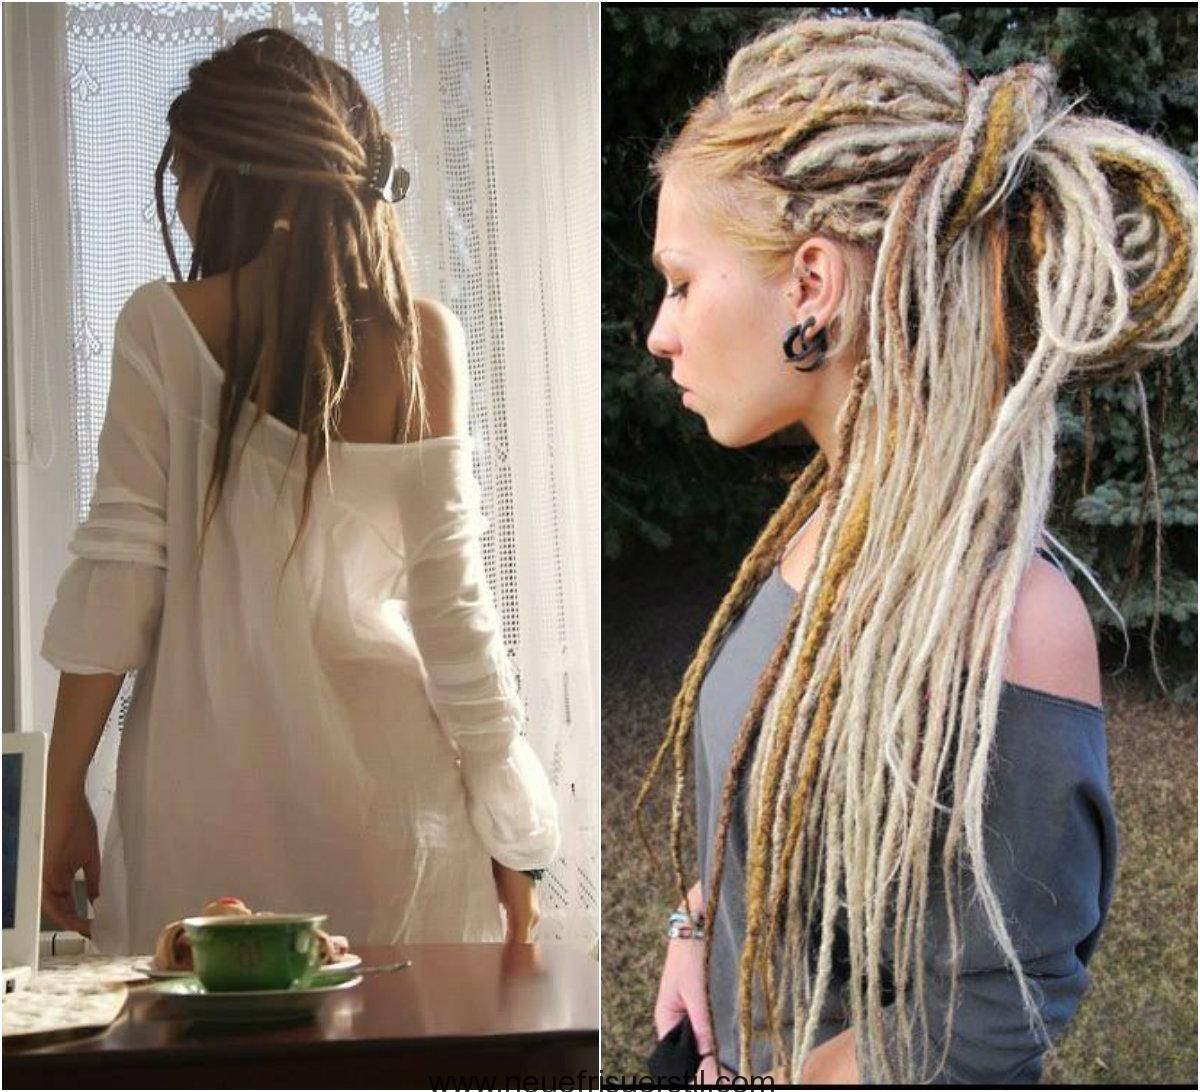 Cool blondie weiblichen dreadlocks frisuren hairstyles cool blondie weiblichen dreadlocks frisuren biocorpaavc Image collections